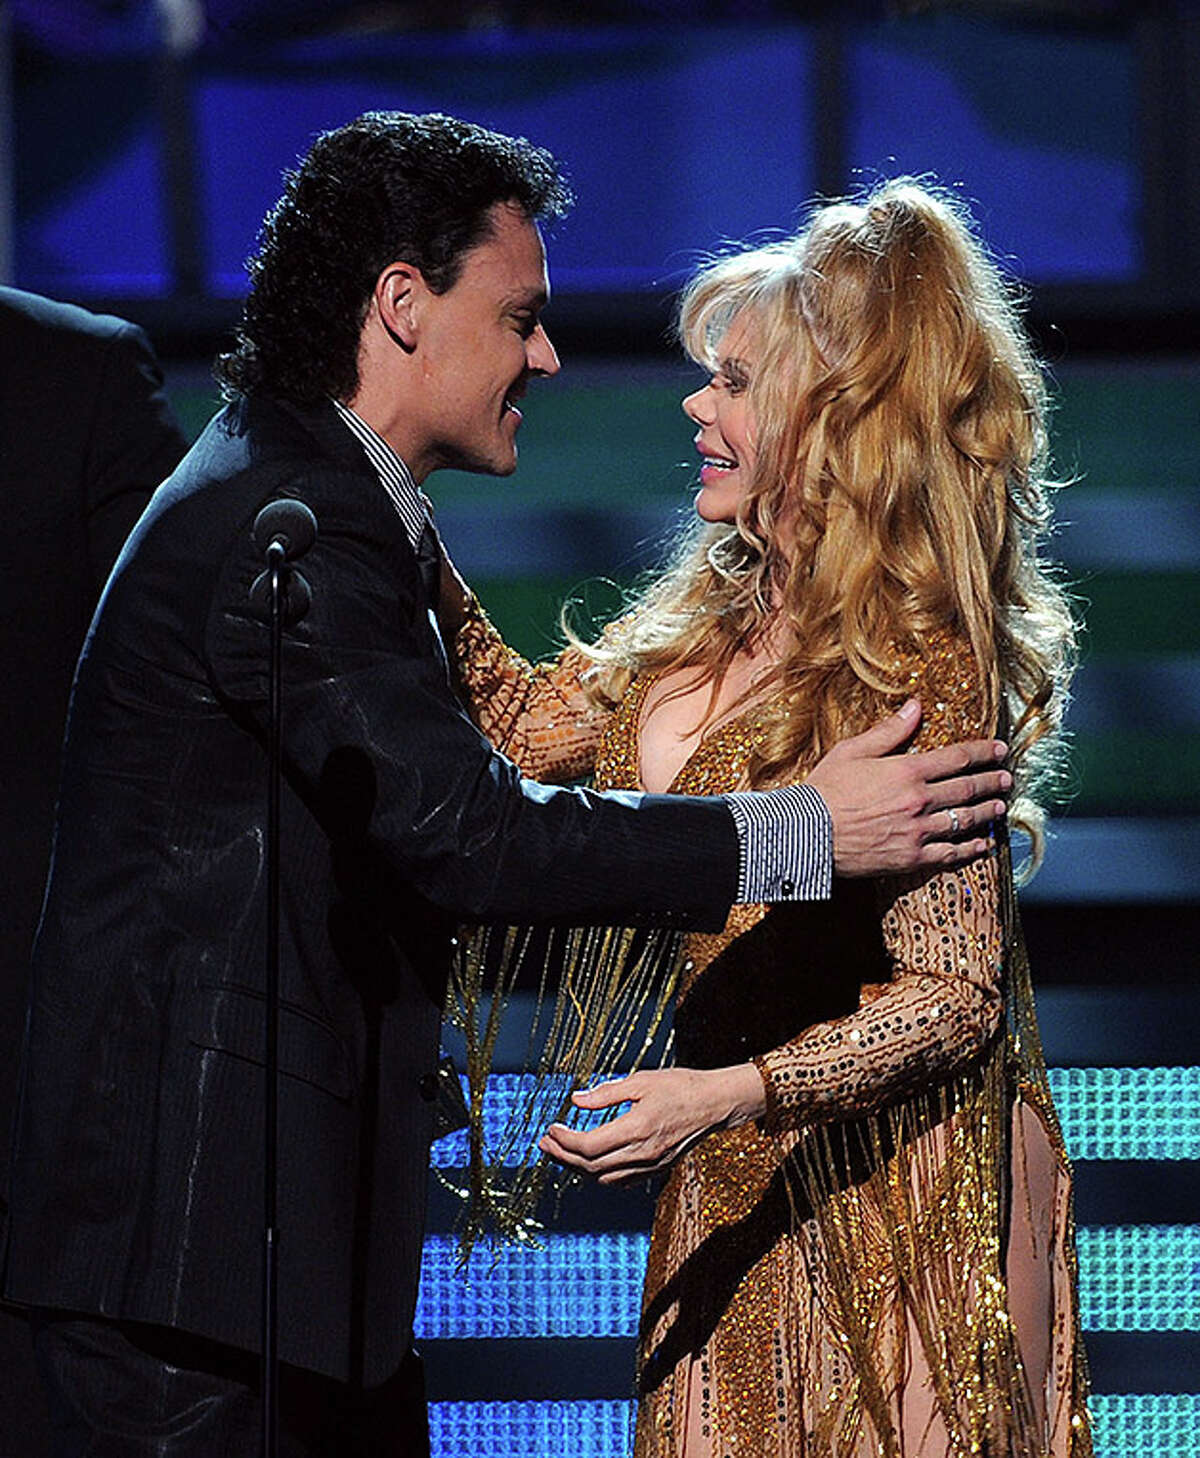 LAS VEGAS - NOVEMBER 11: Pedro Fernandez accepts the Best Regional Mexican Song from Charo onstage during the 11th annual Latin GRAMMY Awards at the Mandalay Bay Events Center on November 11, 2010 in Las Vegas, Nevada. (Photo by Kevin Winter/Getty Images for LARAS) *** Local Caption *** Charo;Pedro Fernandez